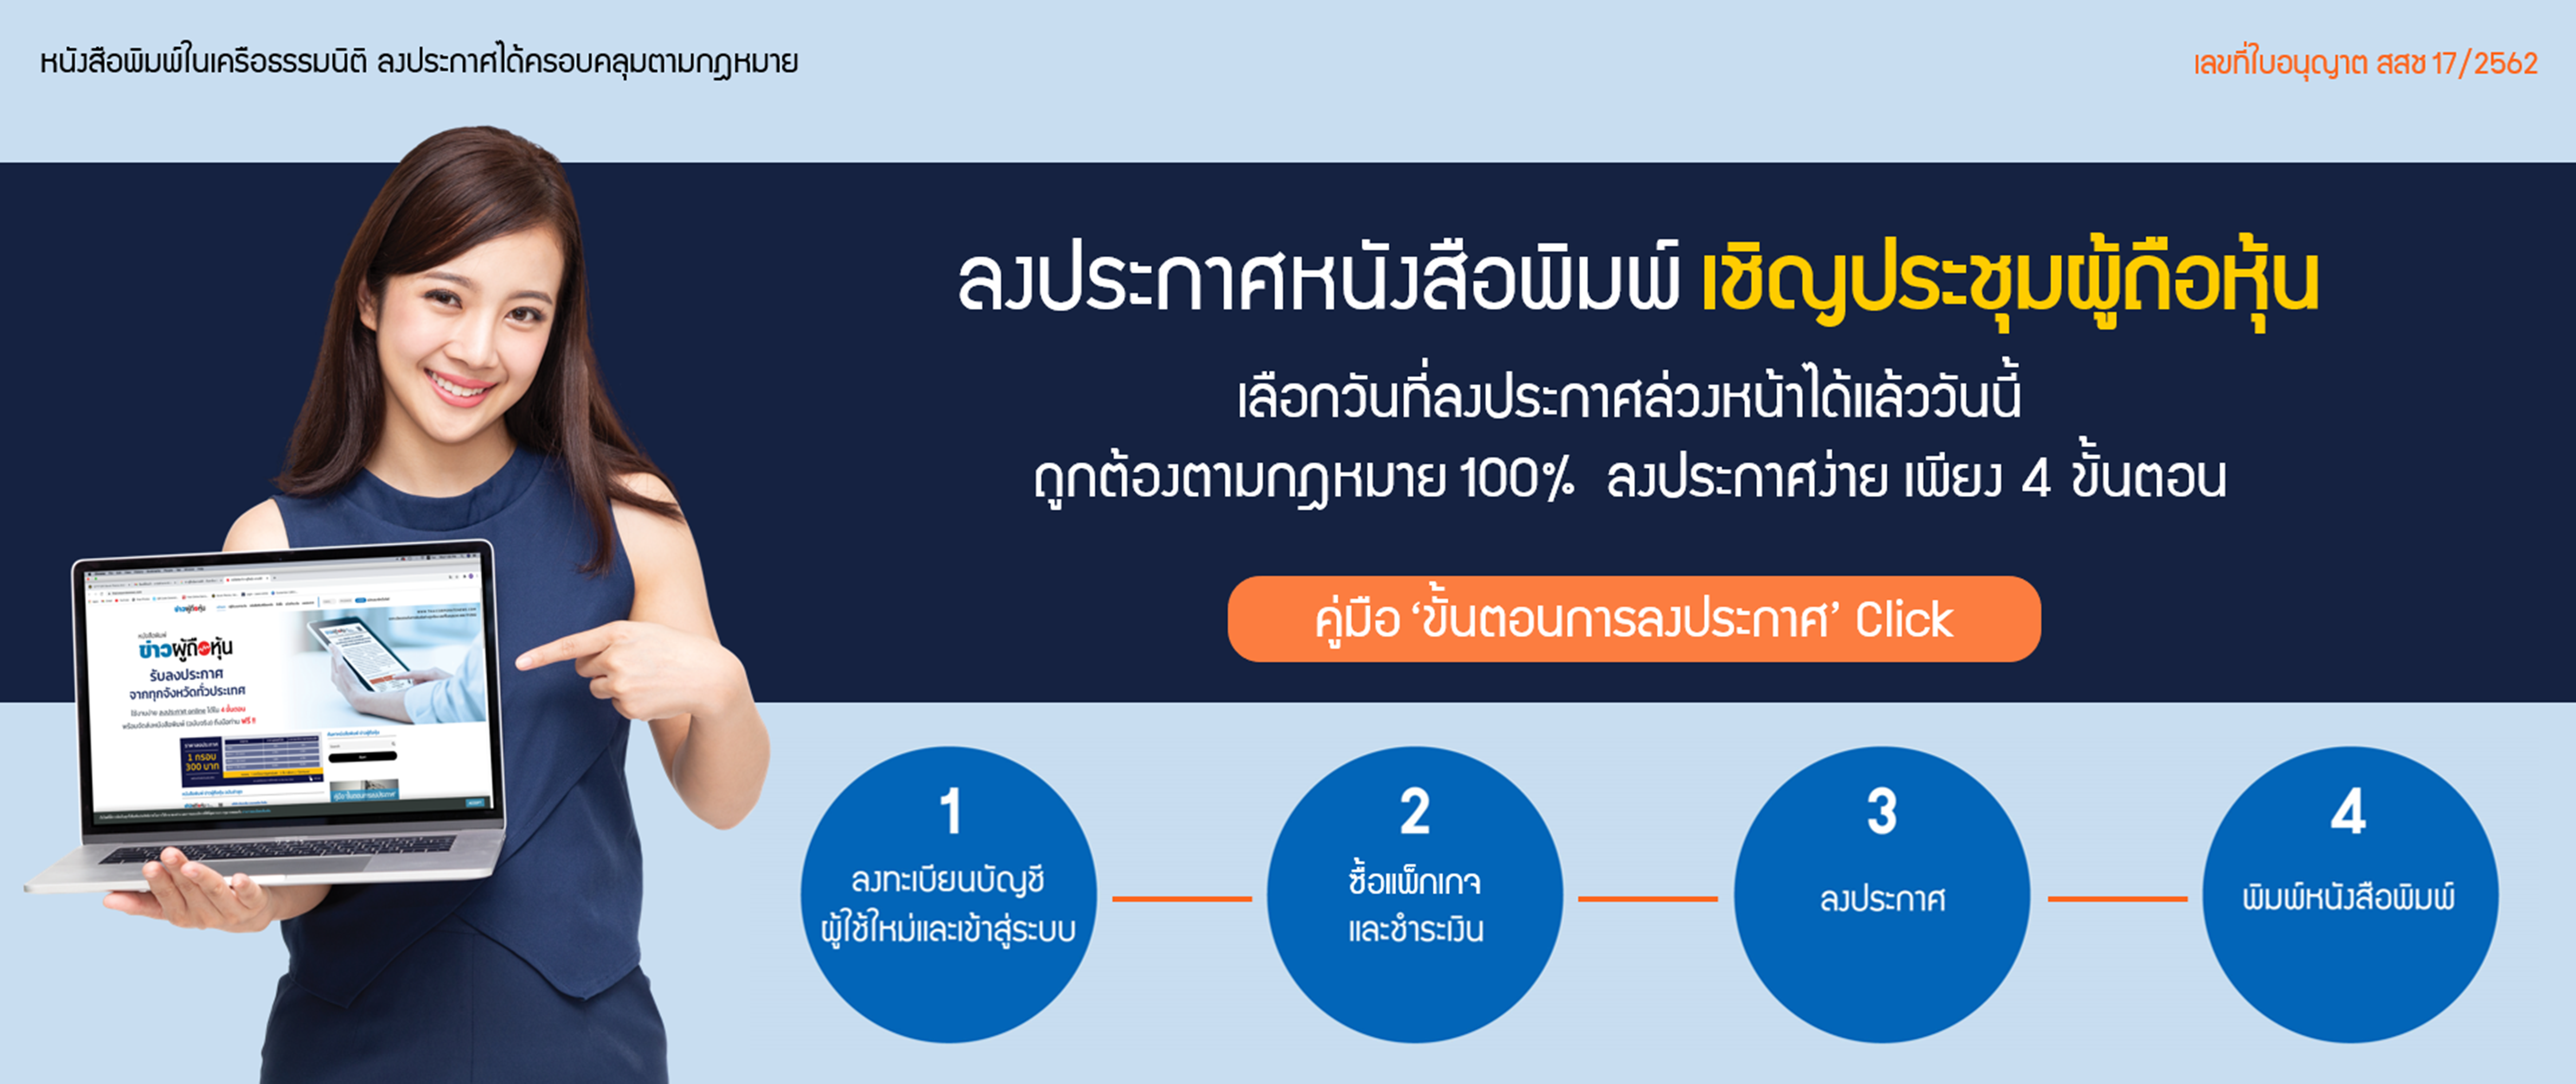 Ads Promotion Page 02